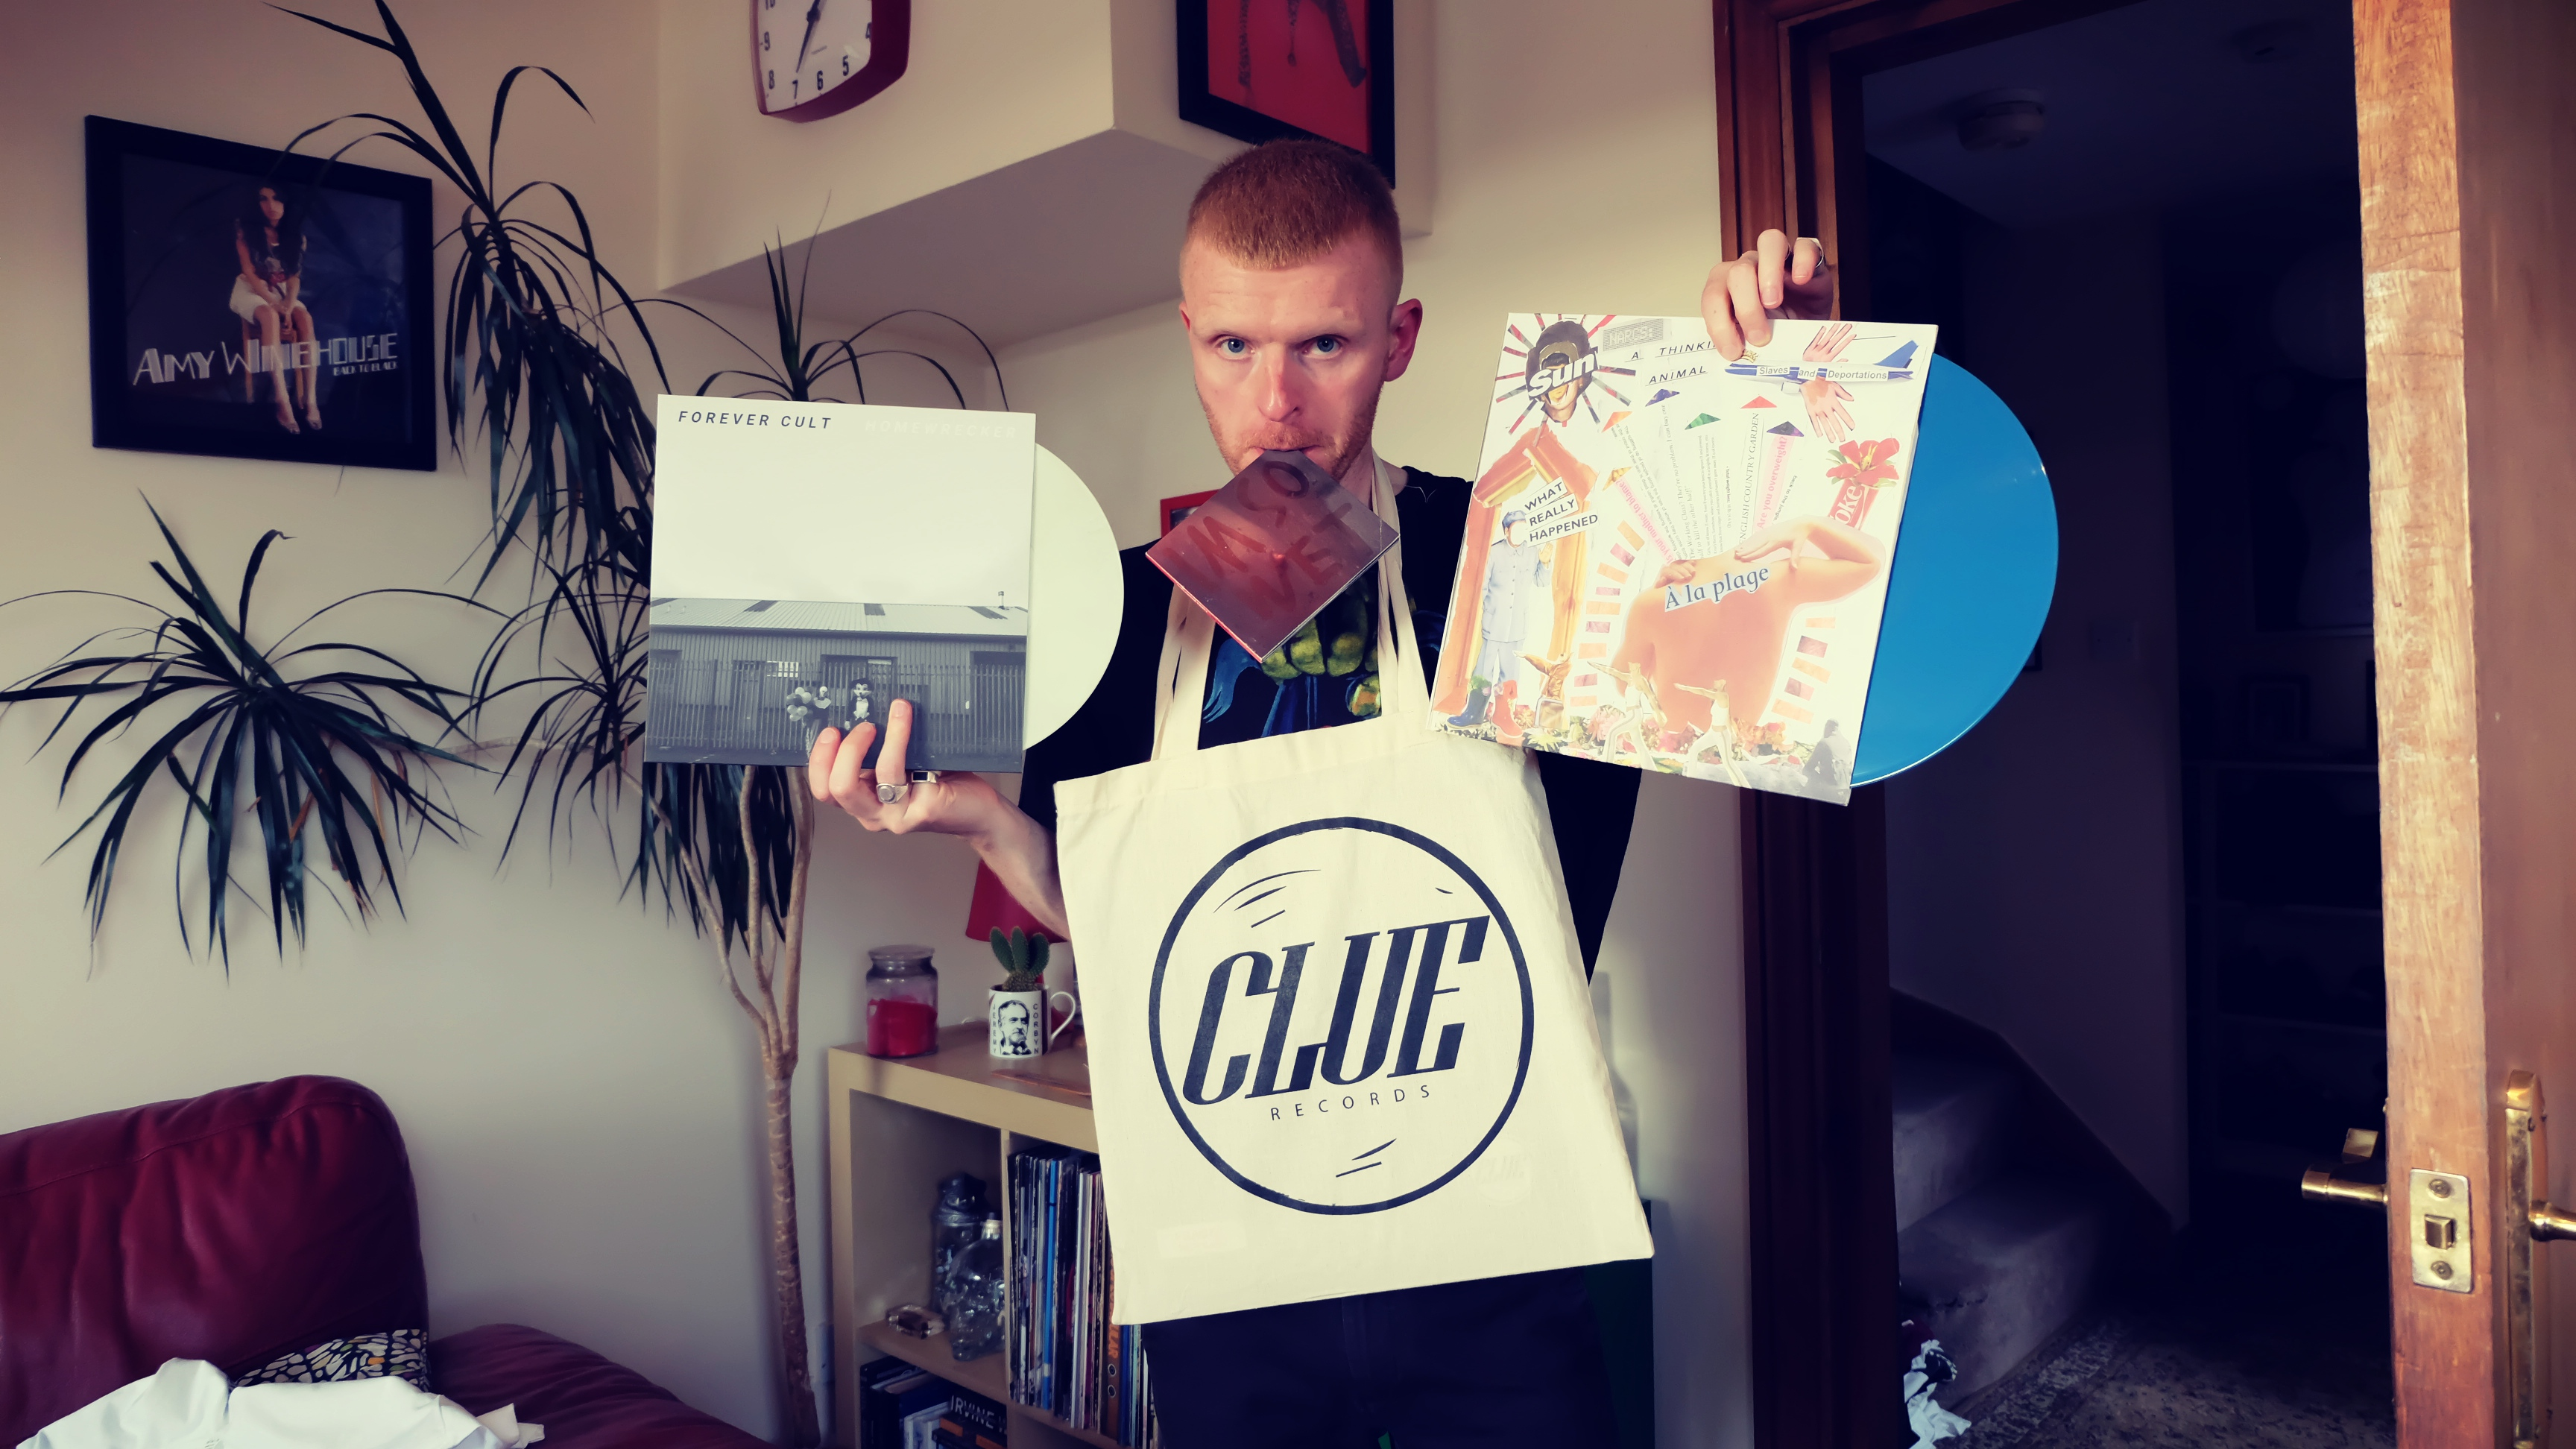 CLUE RECORDS LUCKY BAG (MYSTERY CONTENTS) - Clue Records